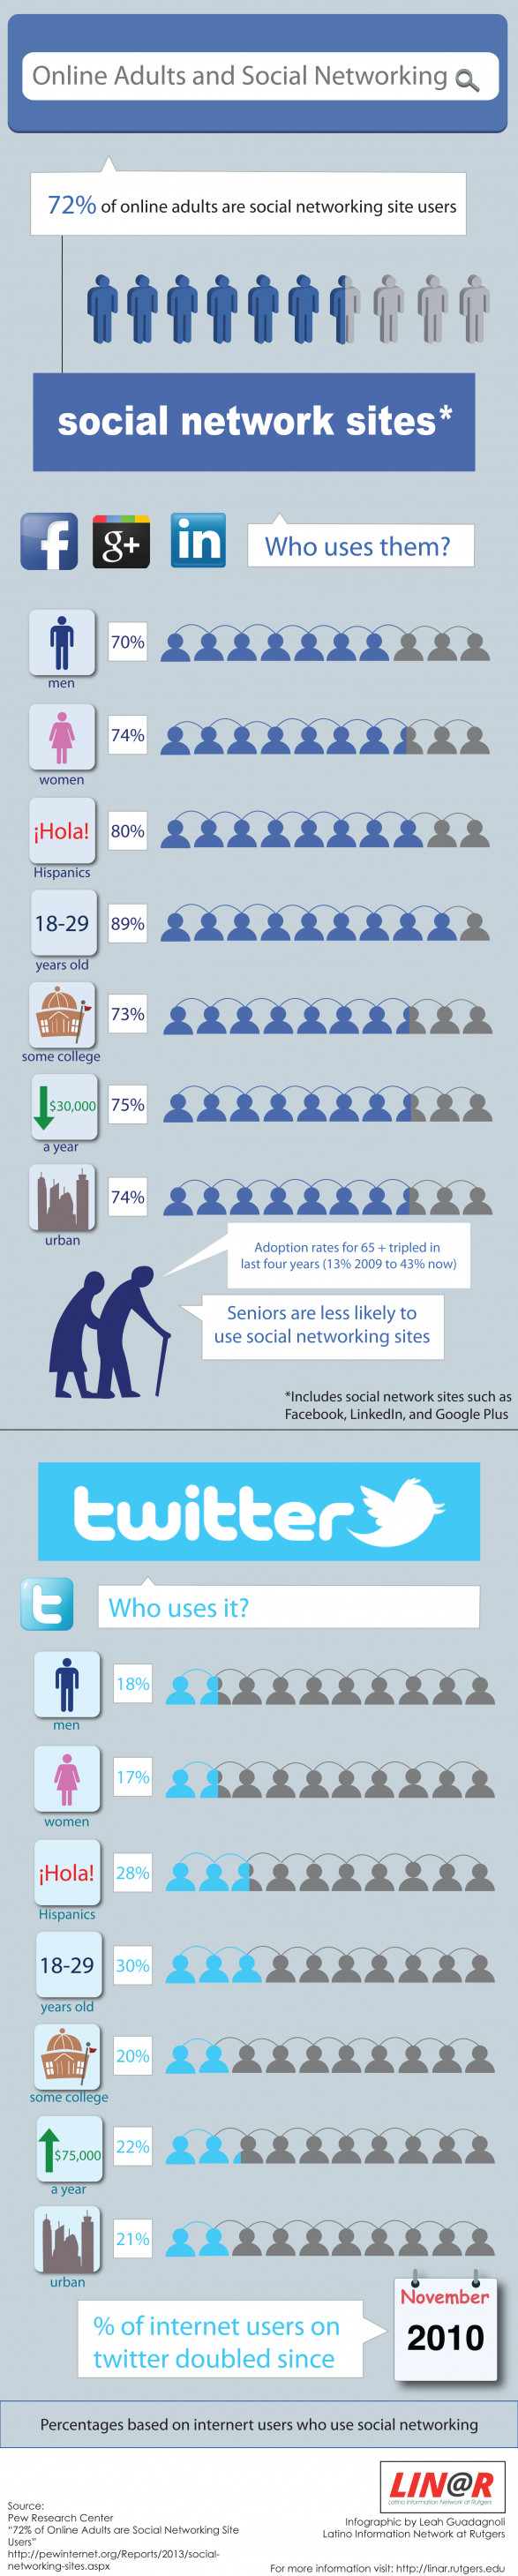 Online Adults and Social Networking